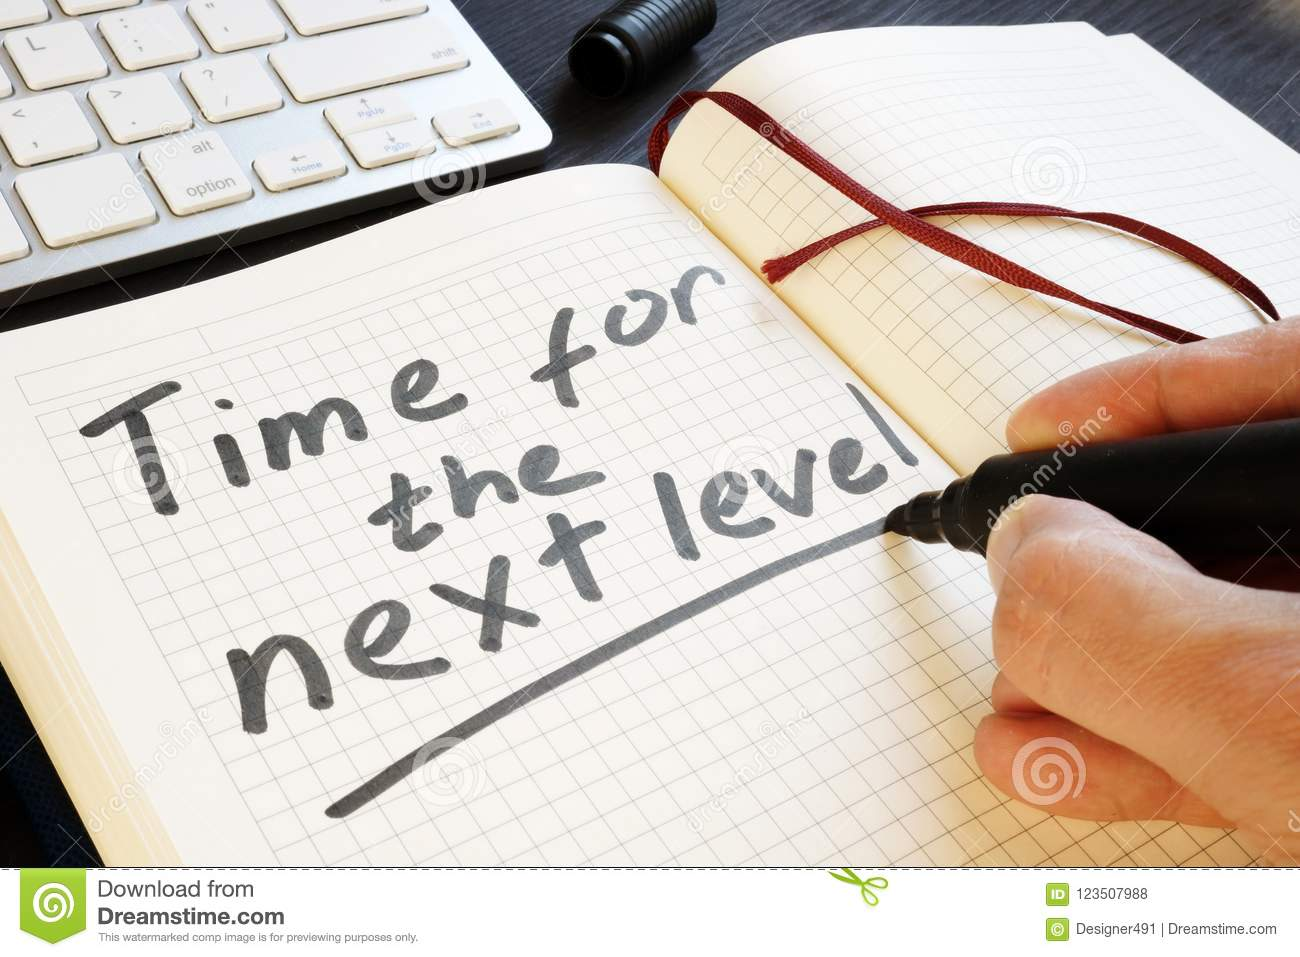 Man Is Writing Time For The Next Level Motivation Stock Photo